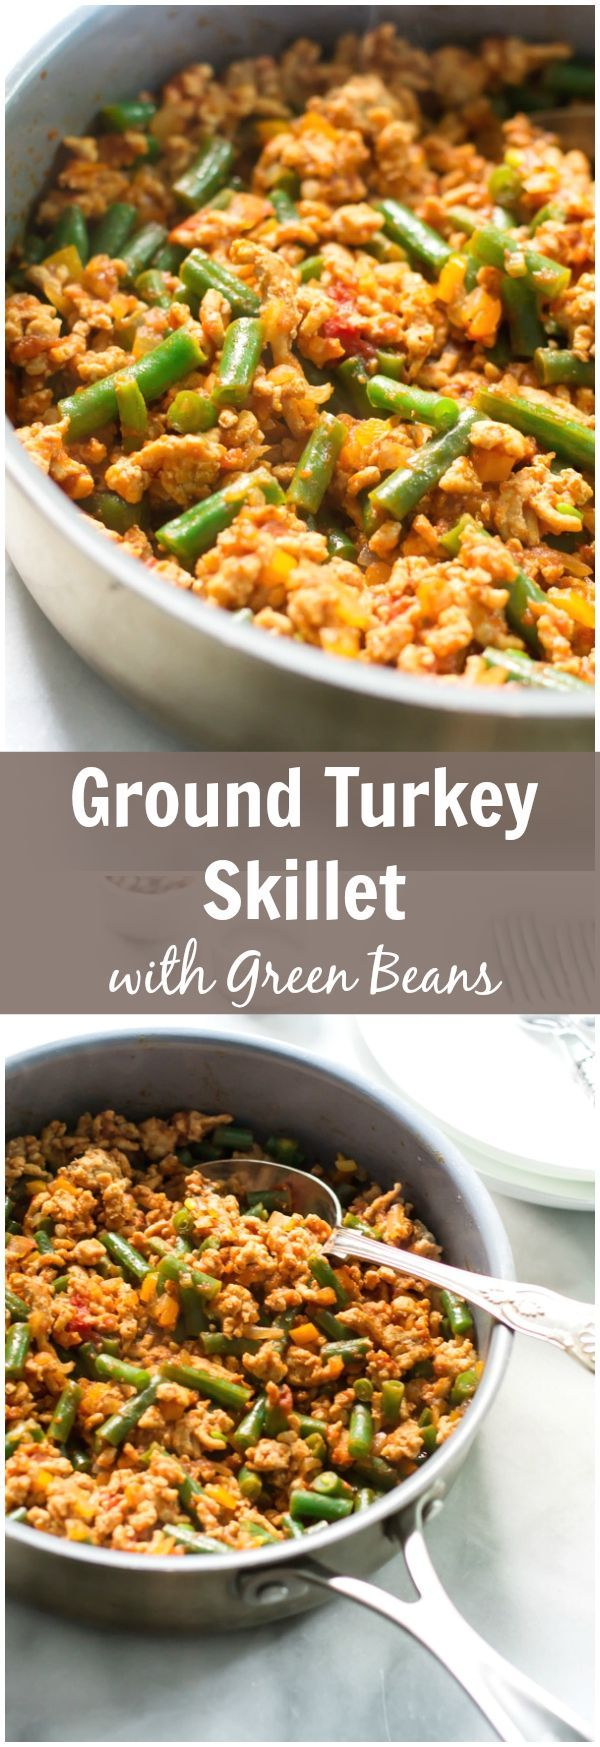 A Very Gluten Free Ground Turkey Skillet With Green Beans Recipe That Is Definitely Easy To